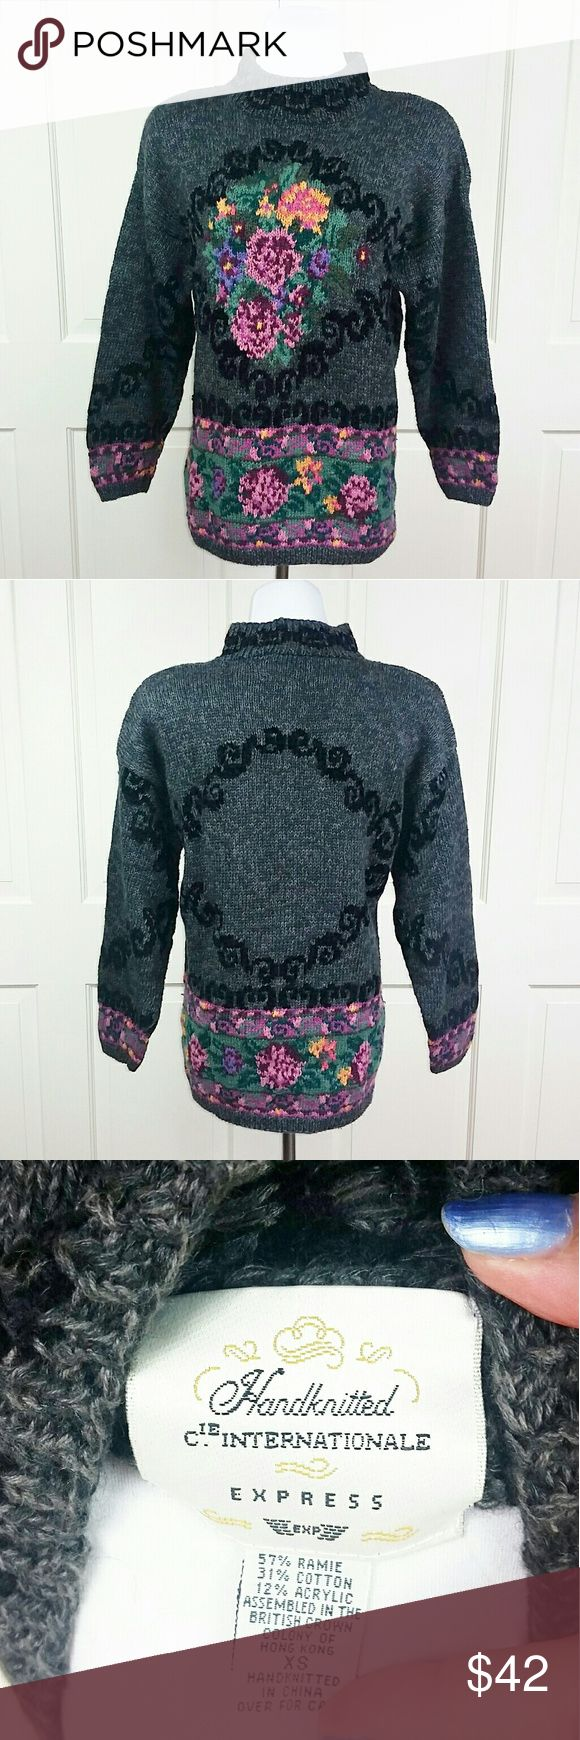 NEW❣ Vintage Floral Sweater from Companie Internationale Express (predesessor to Express)  Marked XS but oversized so would be extra loose on XS, loose on S & would probably fit M. Listing as a SMALL.  Soft 51% Ramie/37% Cotton/12% Acrylic blend. Heavy weight knit. Just lovely!  This vintage treasure was proudly worn by 80s girls with big hair over their stirrup leggings & high top aerobic shoes! It even has the requisite shoulder pads which are easily removable, if you choose. EUC…